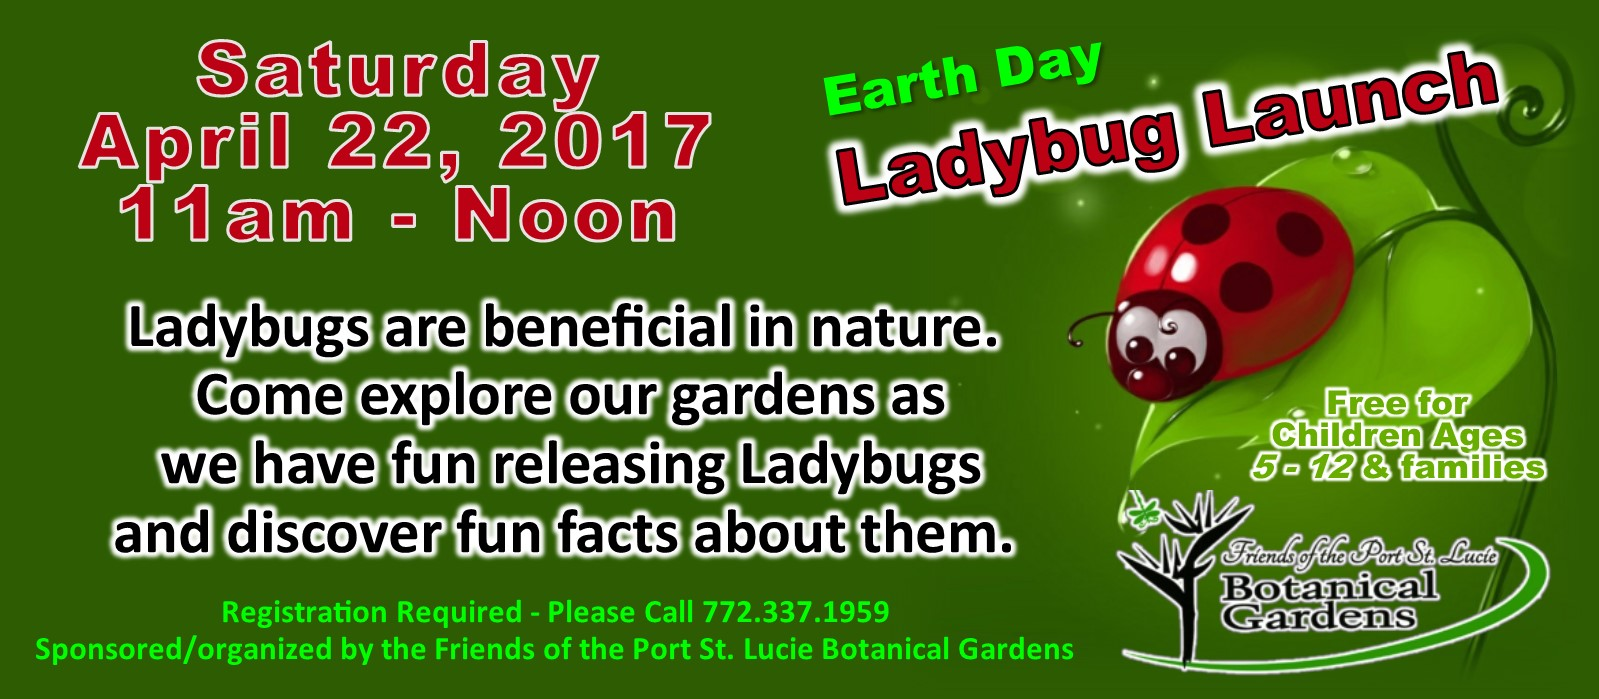 Childrens Event: Earth Day Ladybug Launch